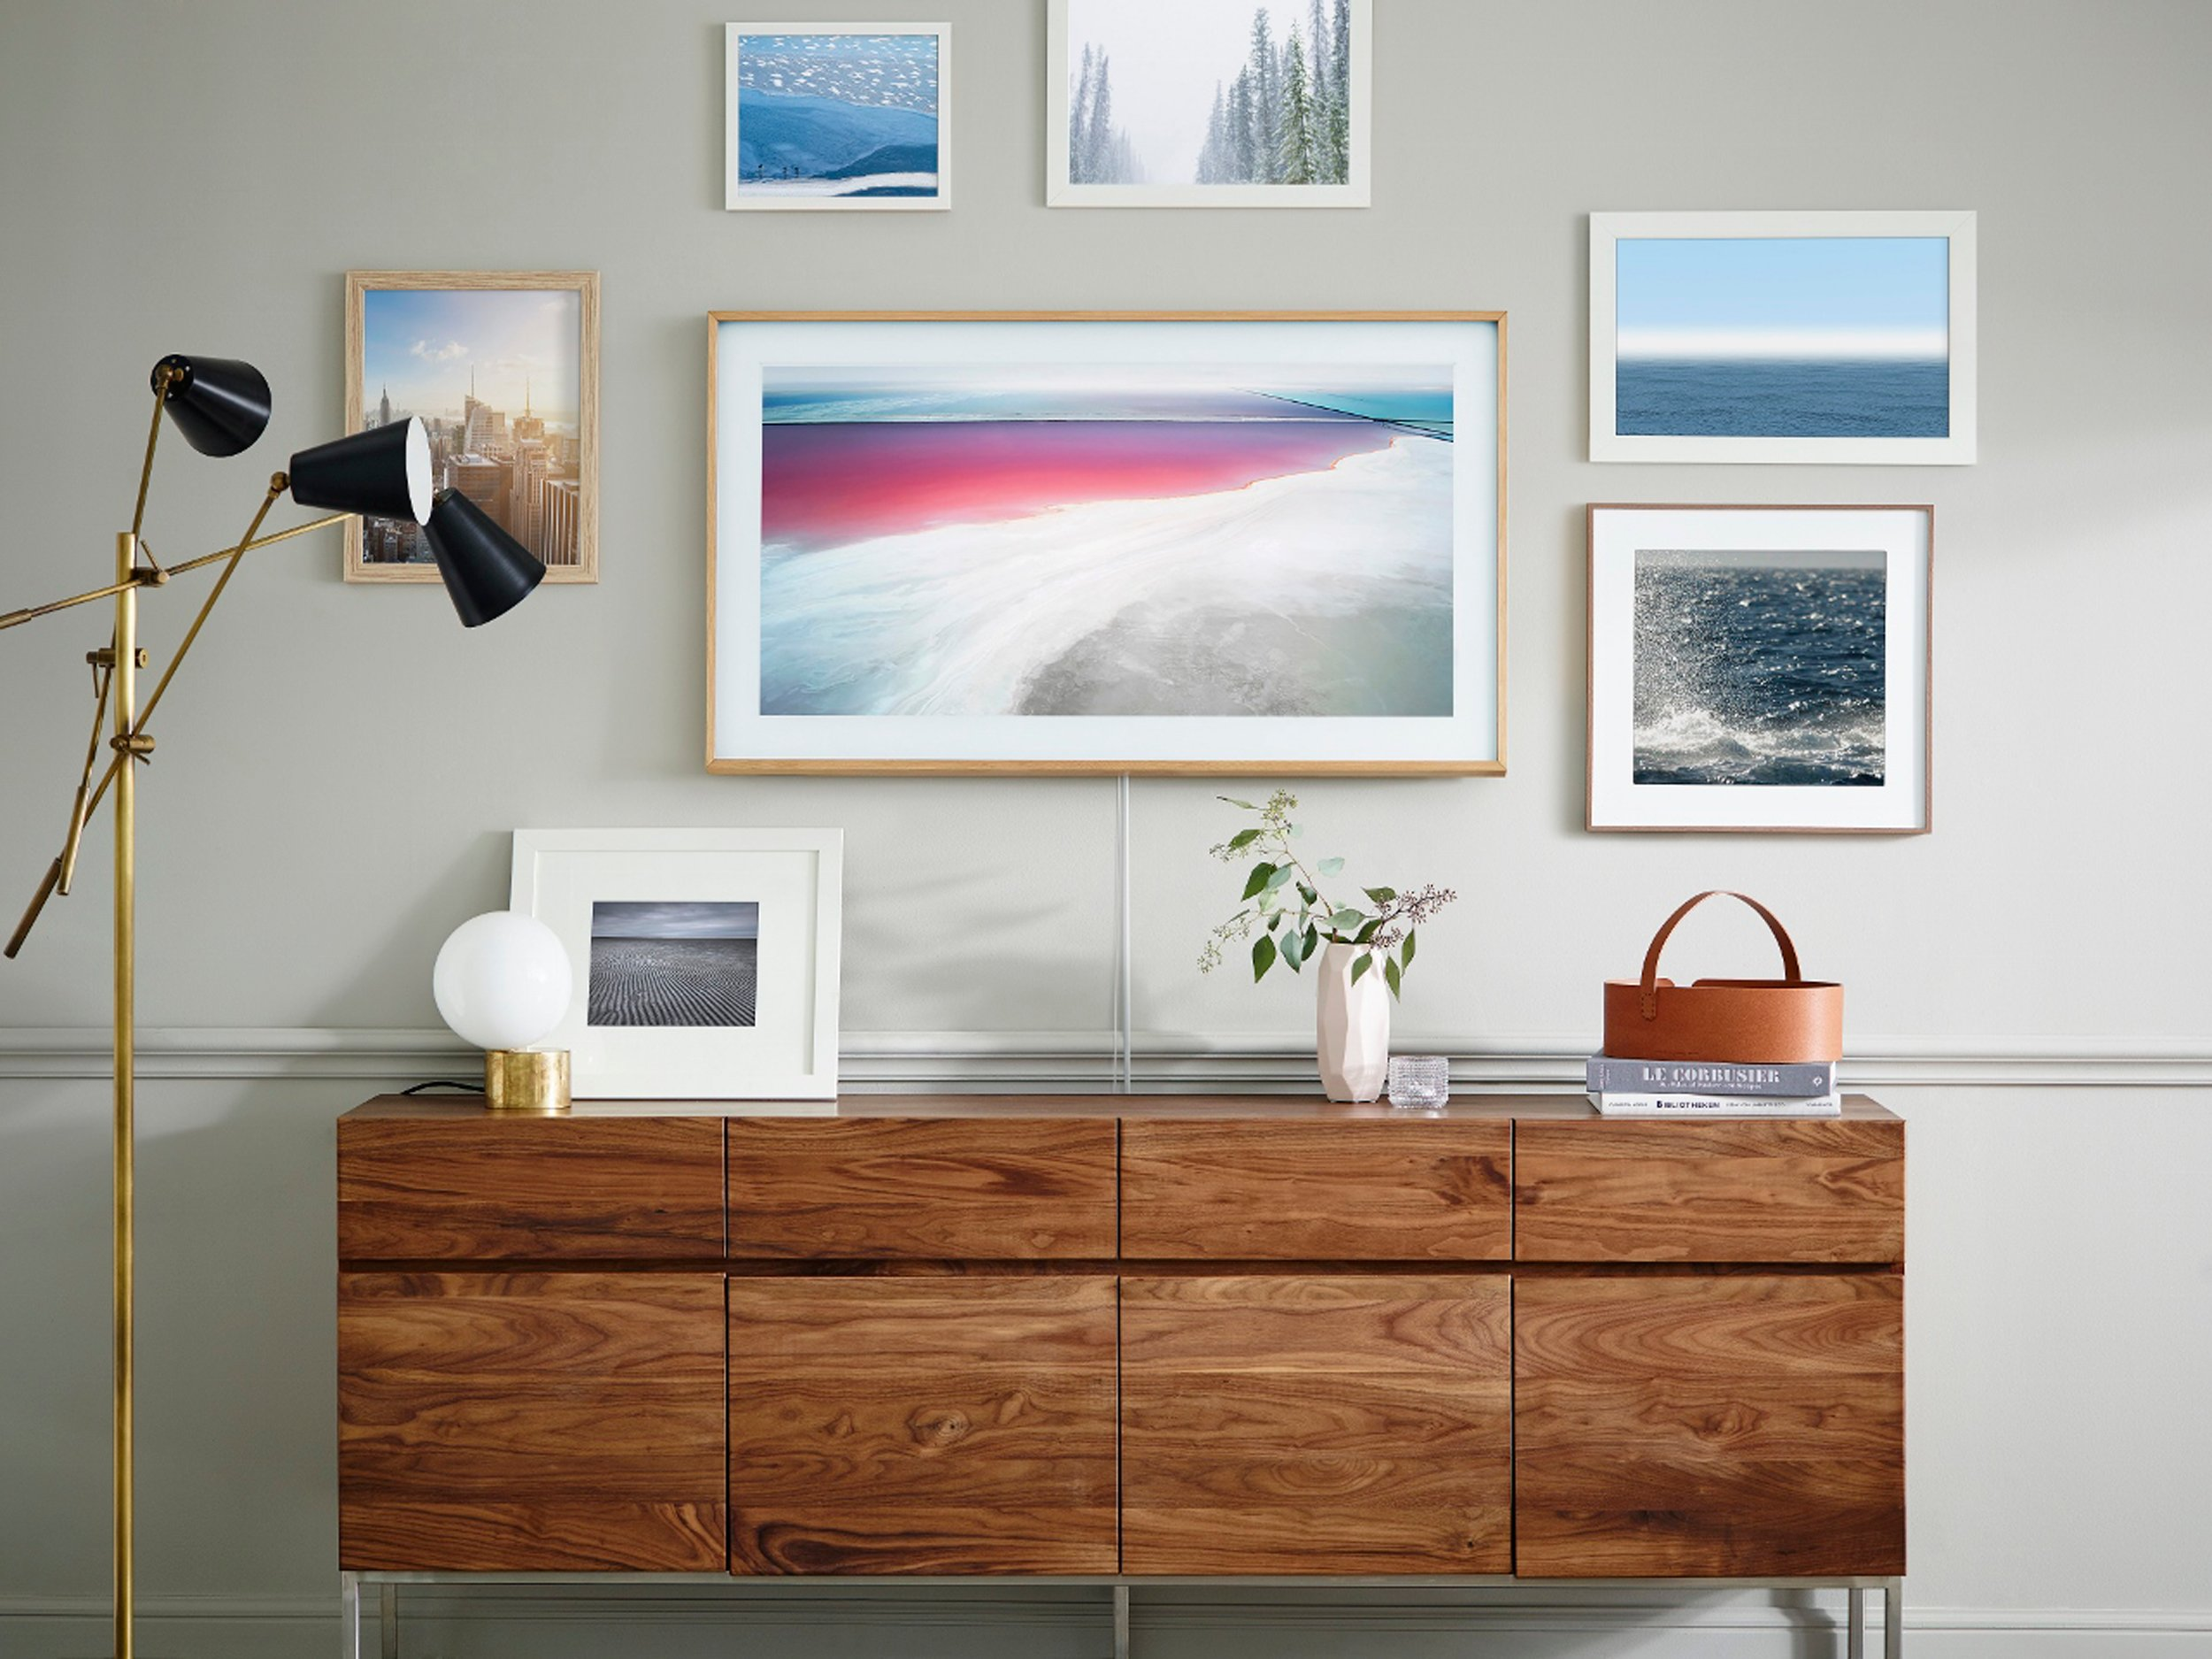 Samsung's new TV doubles as framed artwork